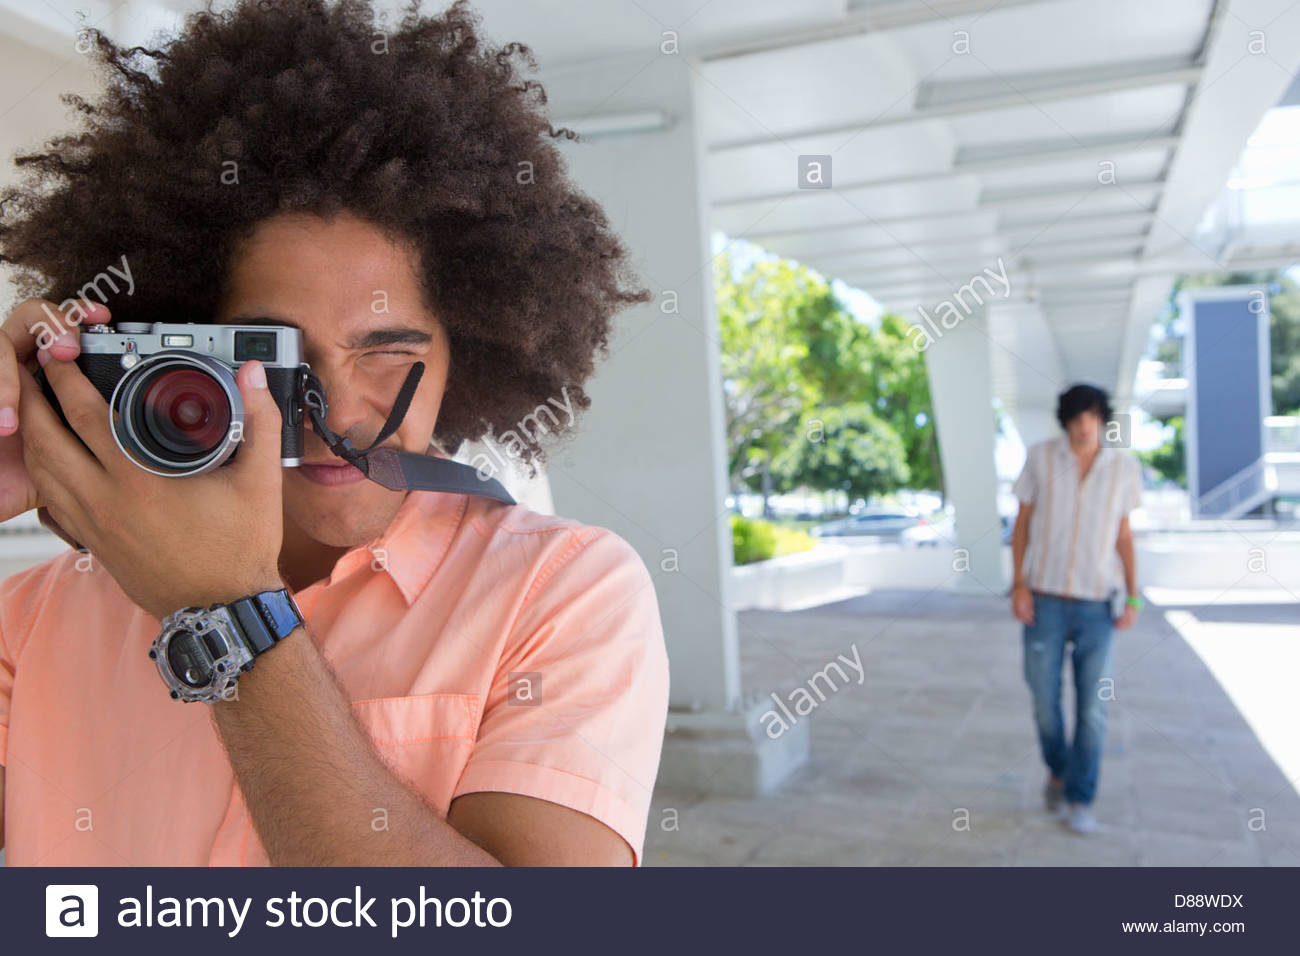 Portrait of young man using camera - Stock Image